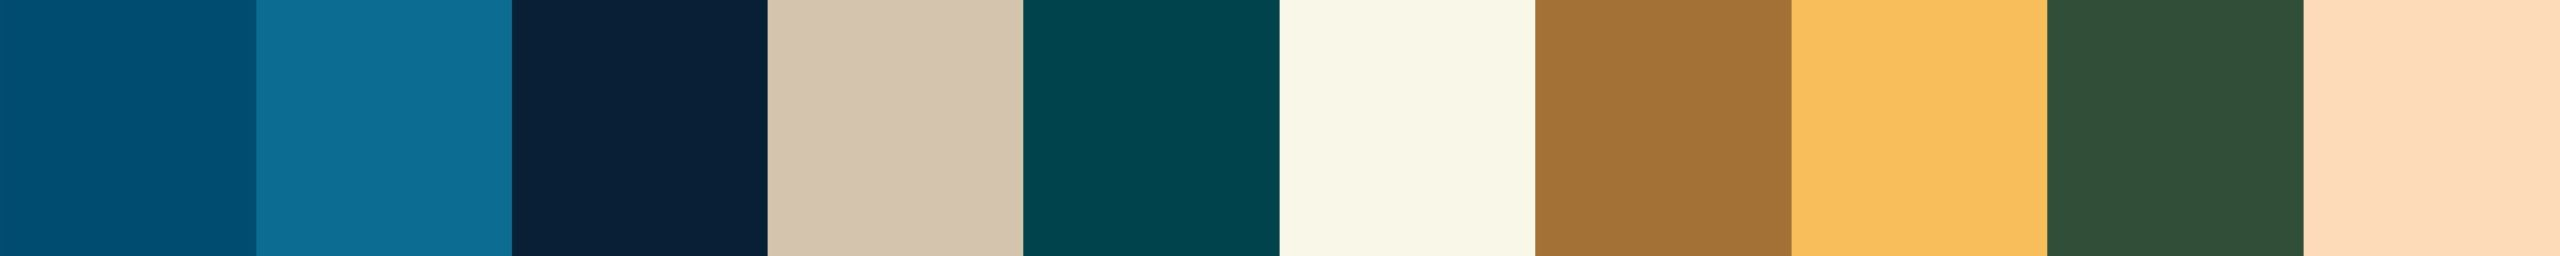 237 Fariaxia Color Palette